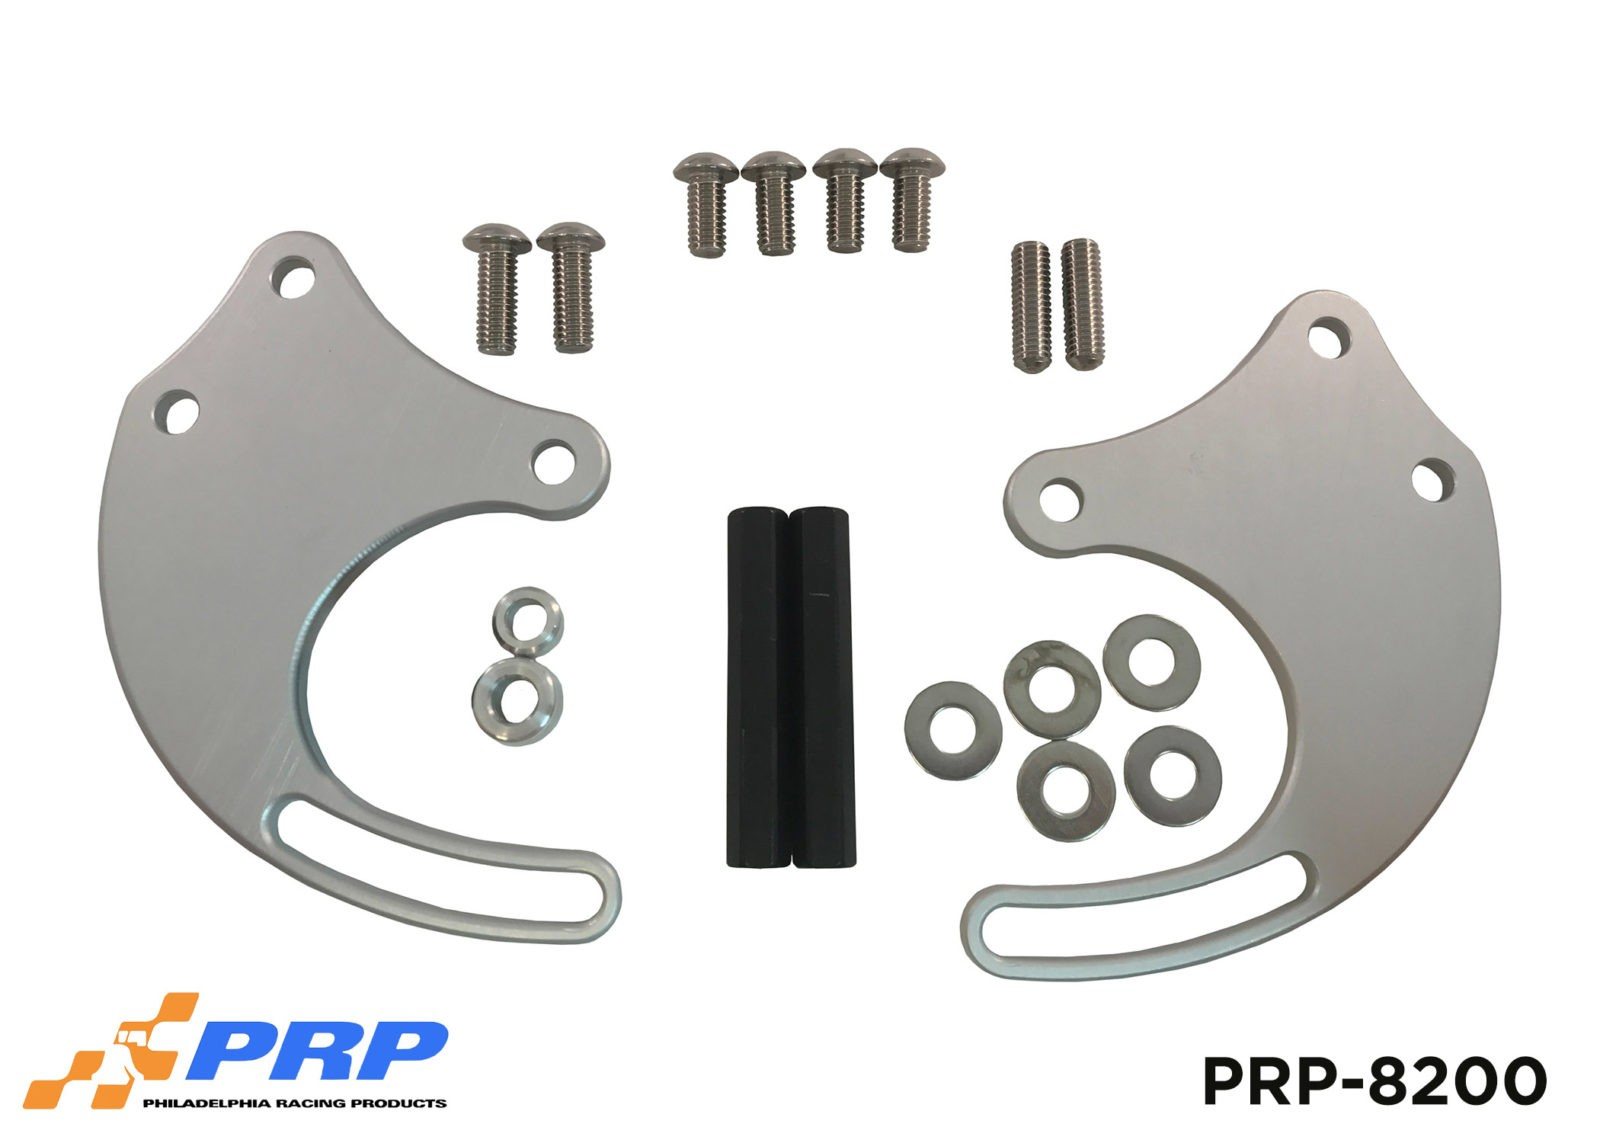 Silver and Black Power Steering Pump Mounting Bracket Kits